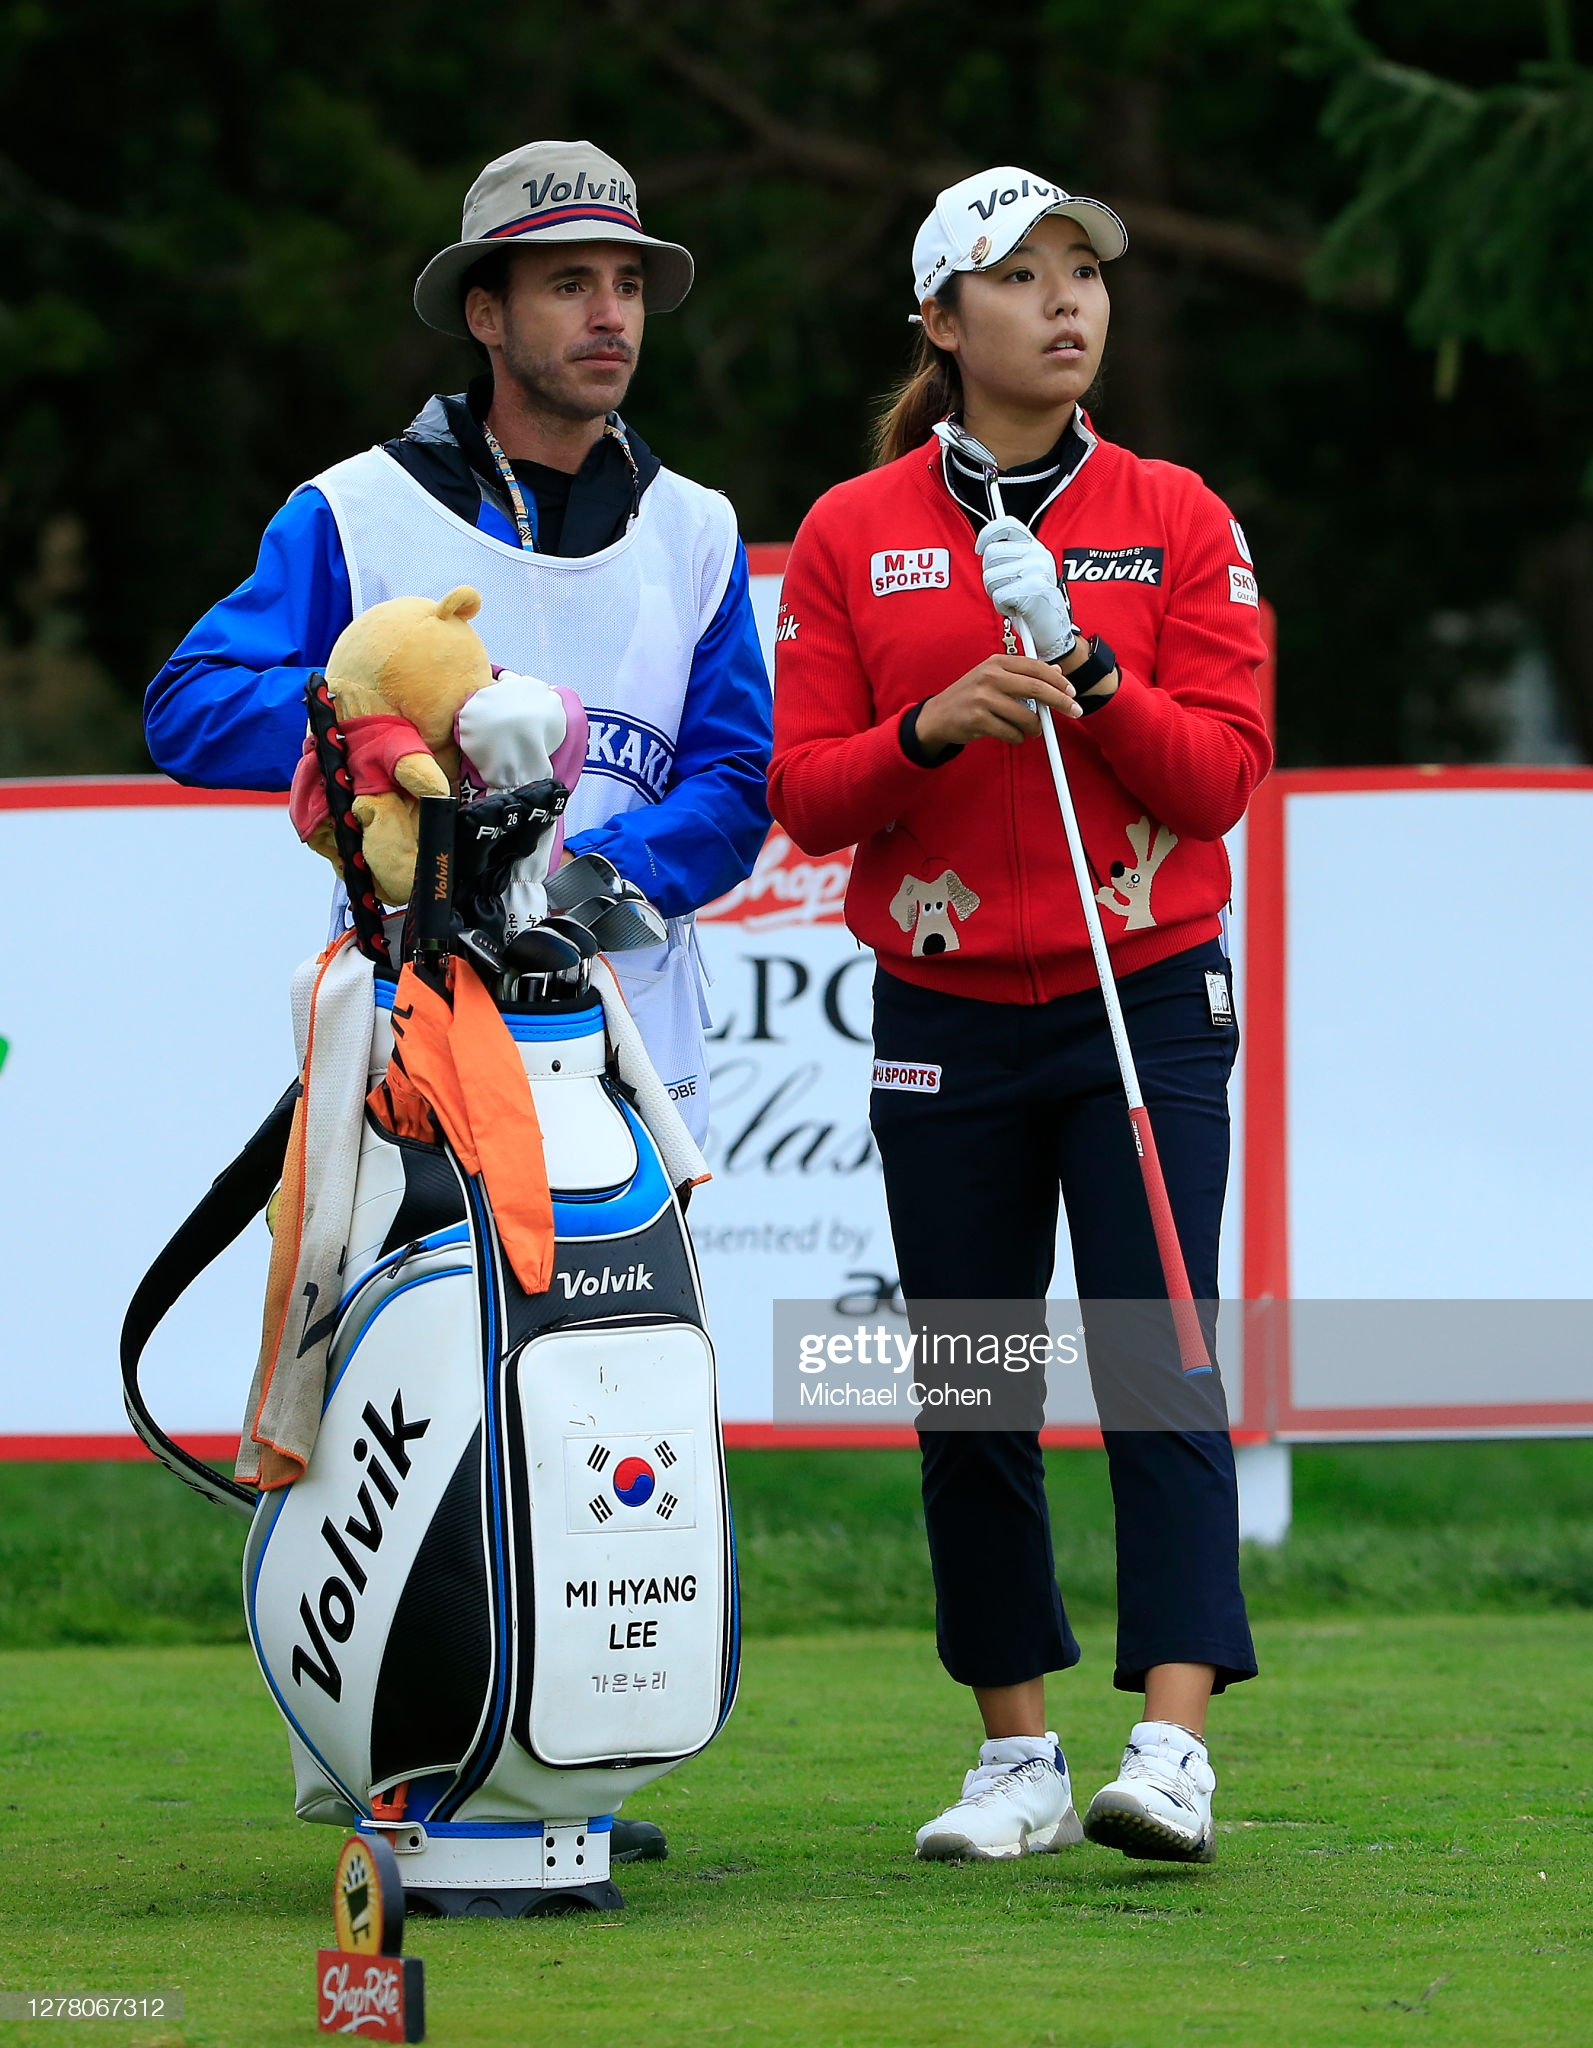 https://media.gettyimages.com/photos/mi-hyang-lee-of-korea-prepares-to-hit-her-tee-shot-on-the-17th-hole-picture-id1278067312?s=2048x2048